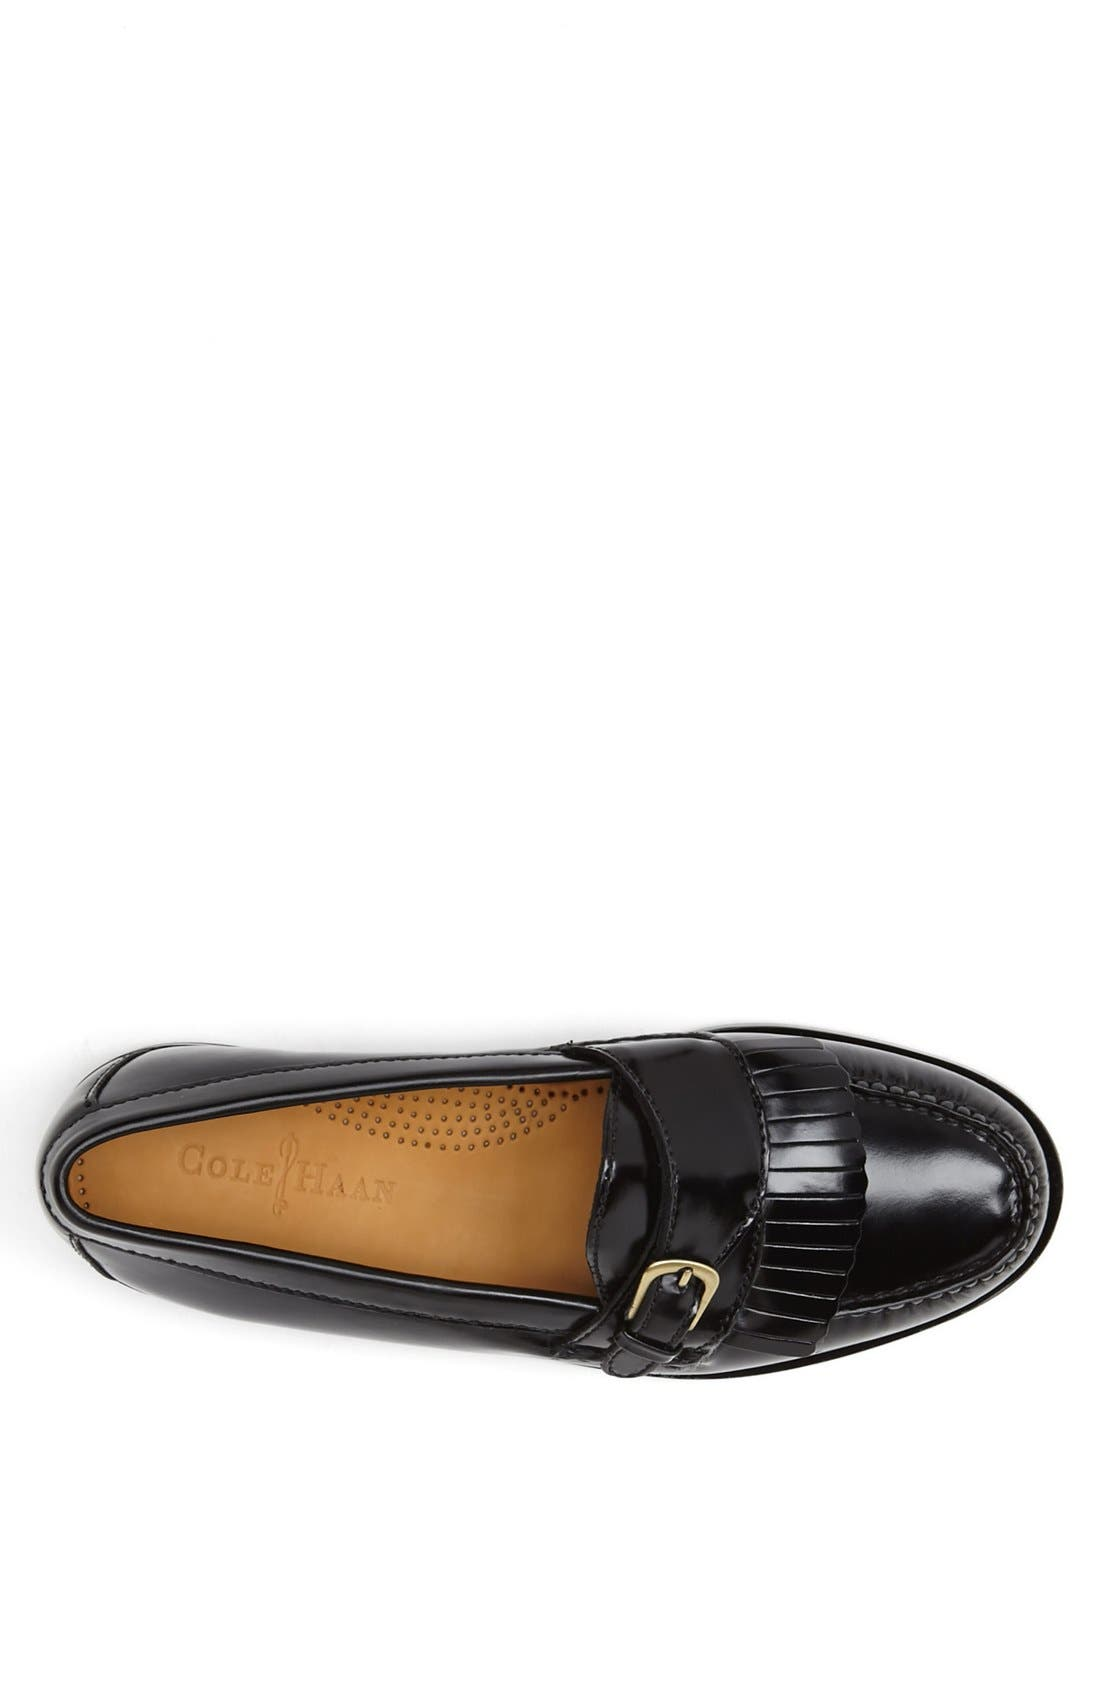 Alternate Image 3  - Cole Haan 'Pinch Buckle' Loafer   (Men)